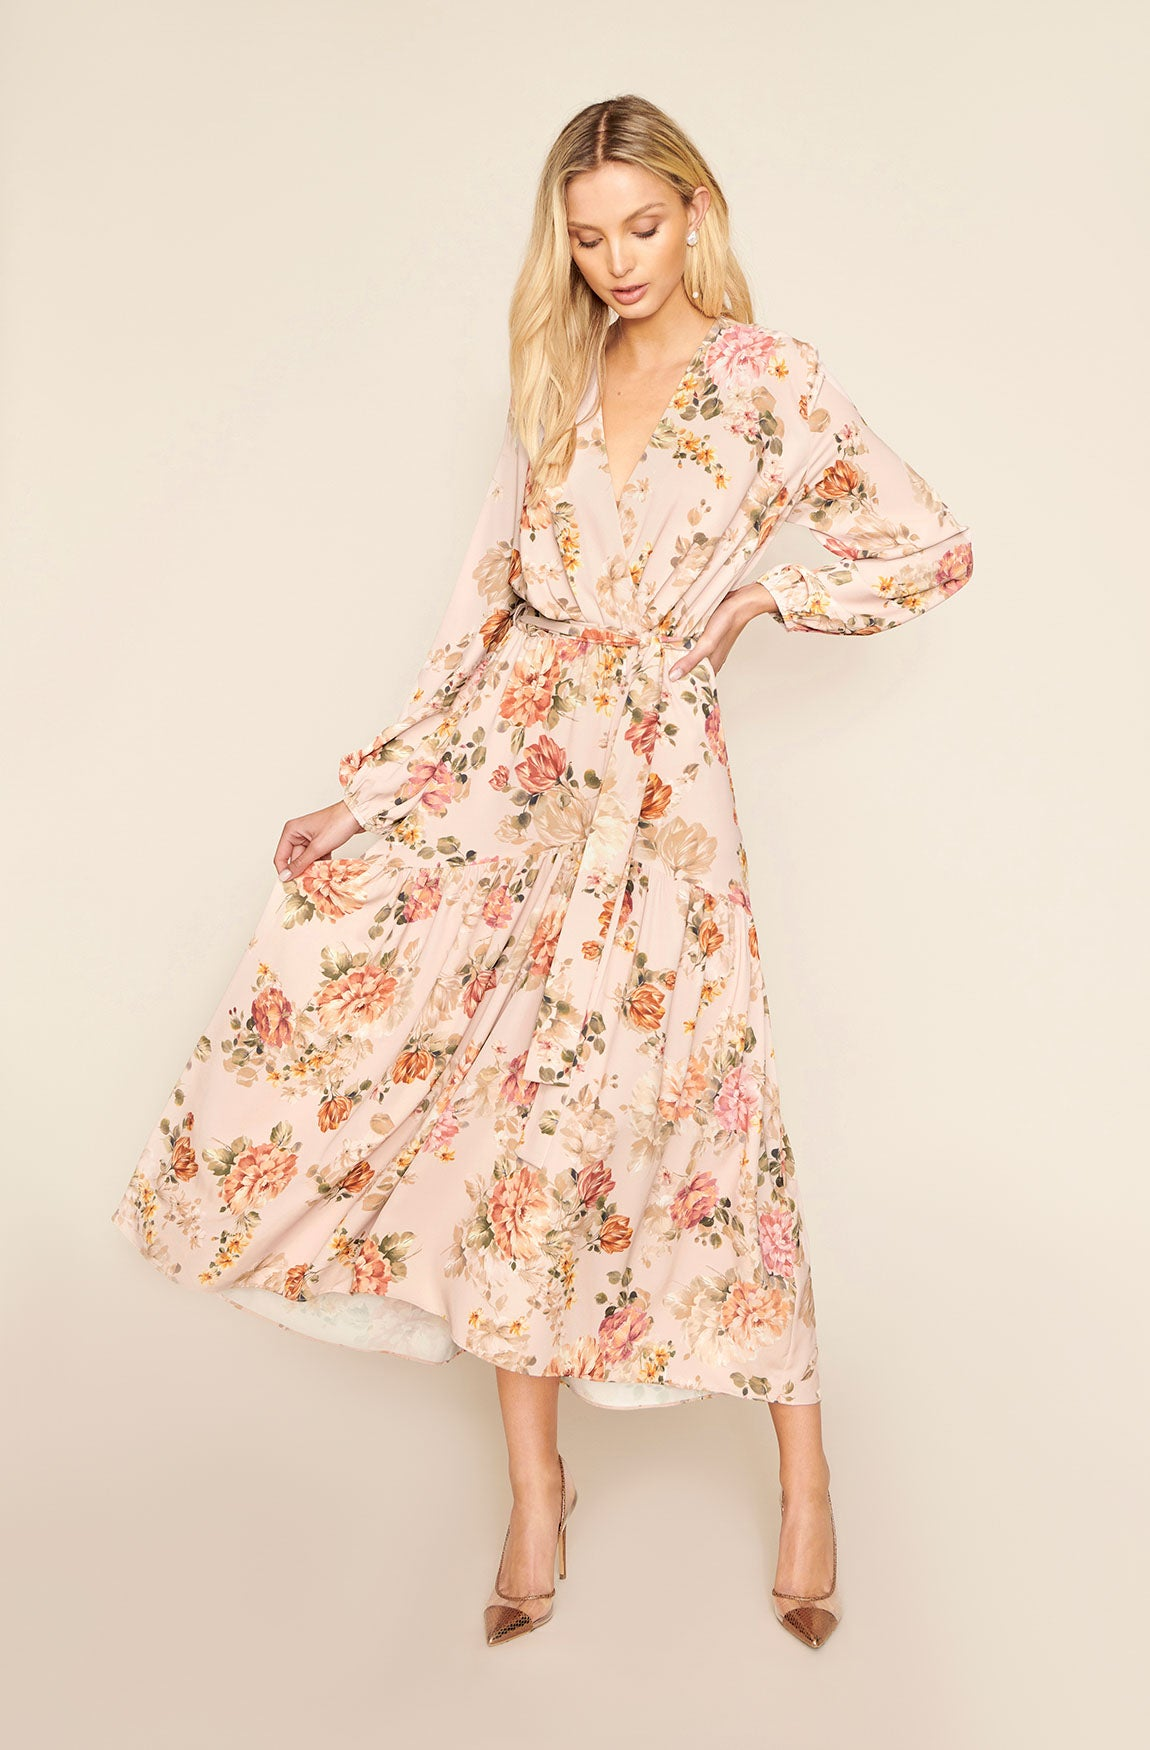 EMILY FLORAL DRESS